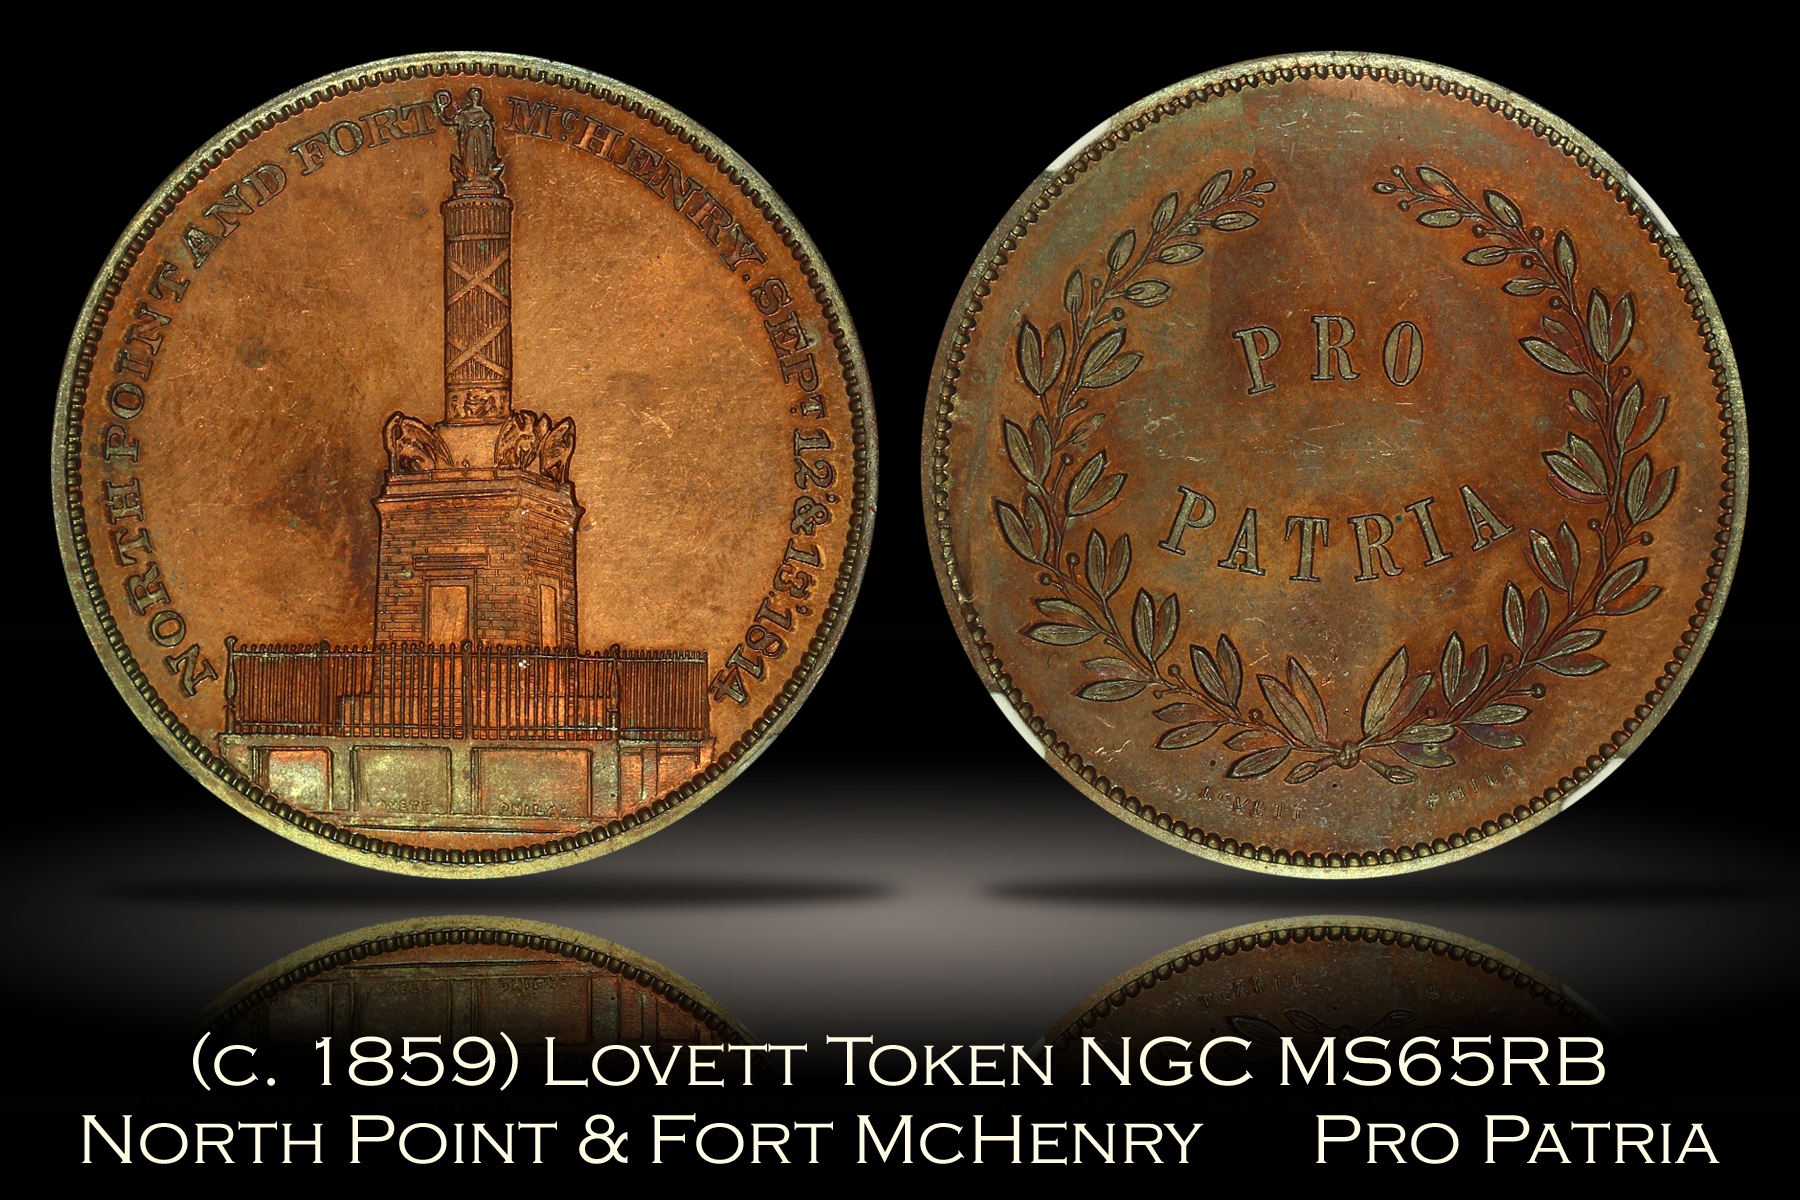 (c. 1859) Lovett North Point & Fort McHenry Pro Patria NGC MS65RB